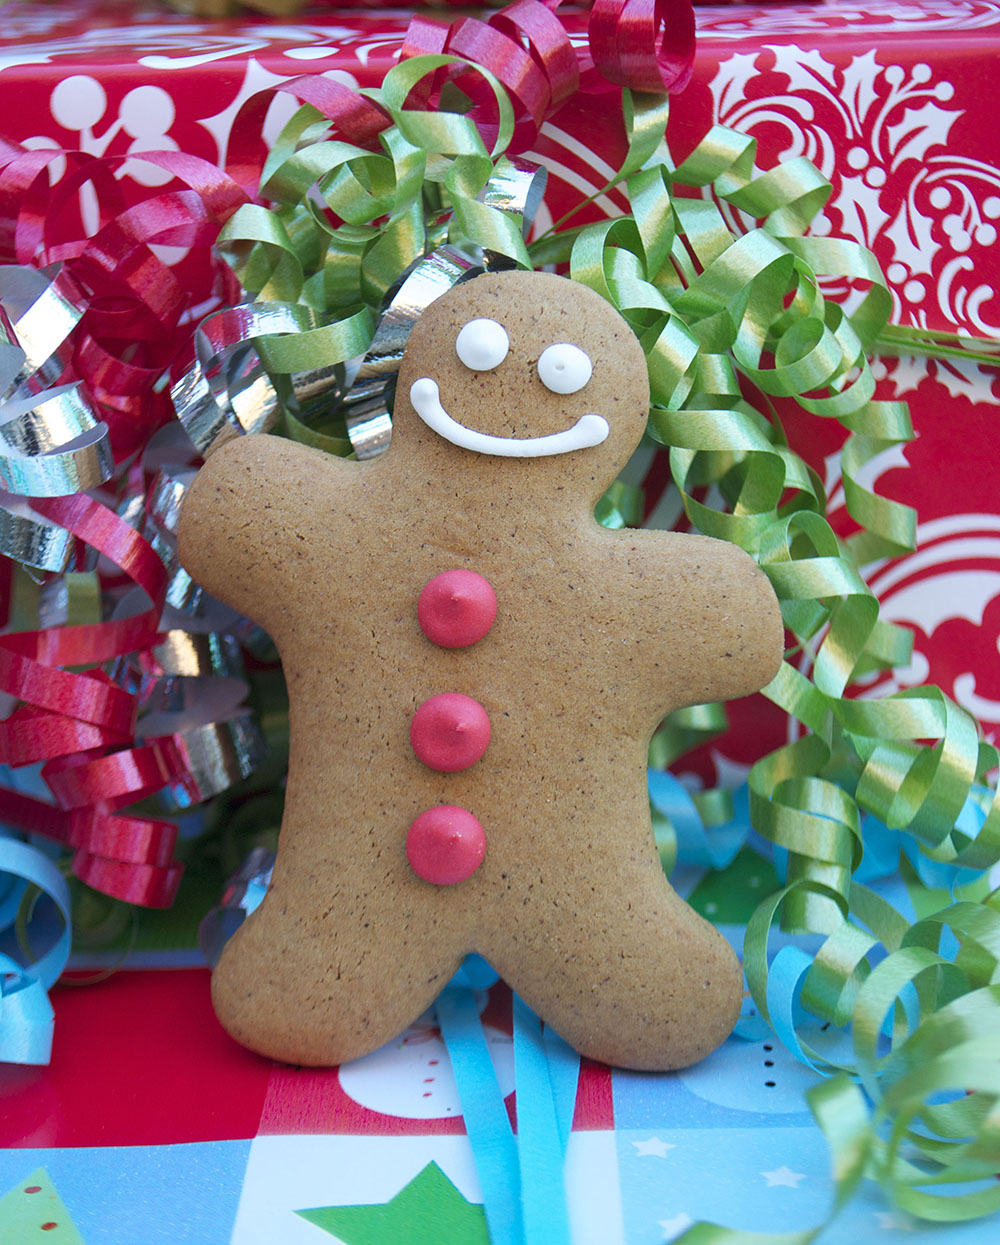 Bake Sale Toronto Christmas Holiday Gingerbread Man Person Facebook.jpg